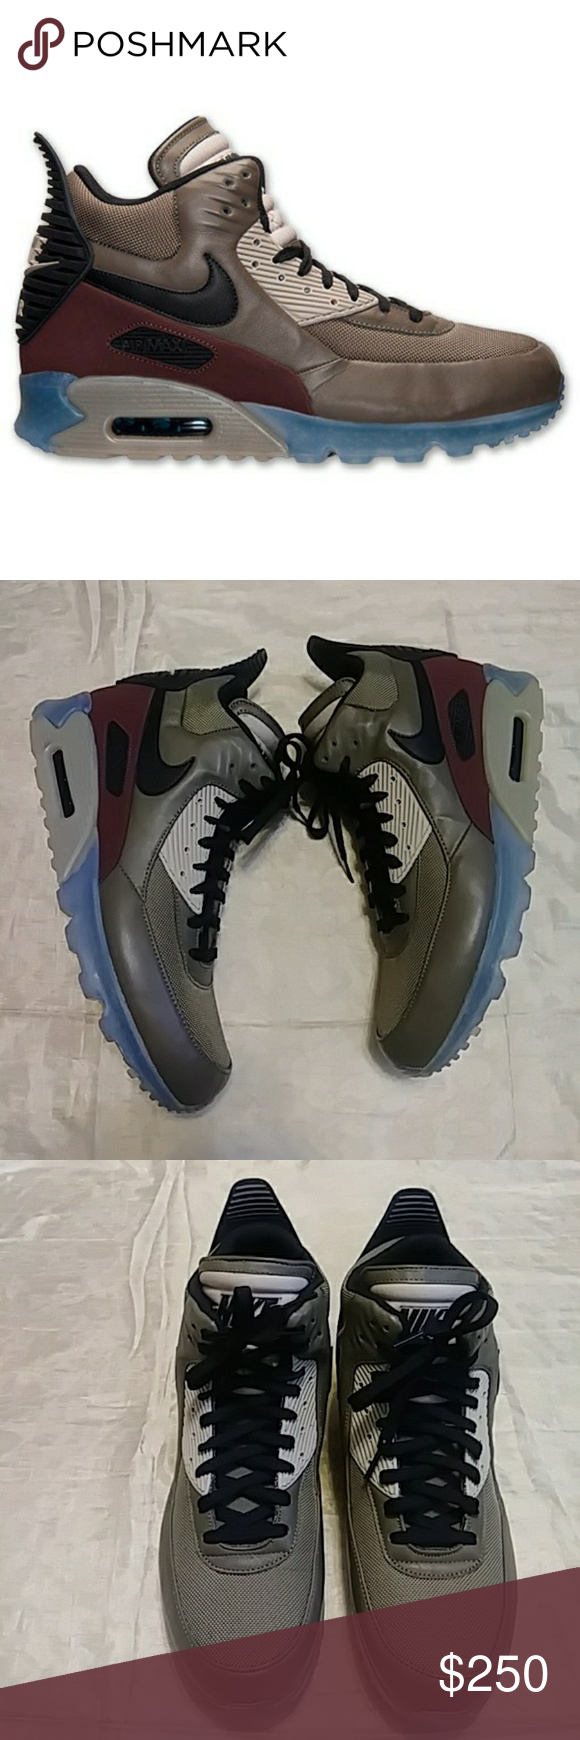 newest df7e5 3aae7 Nike Air Max 90 SneakerBoot Ice Dark Dune Excellent Condition. Like New.  Worn once. Icy Clear Sole. Dark olive green base for its weatherized and  waterproof ...